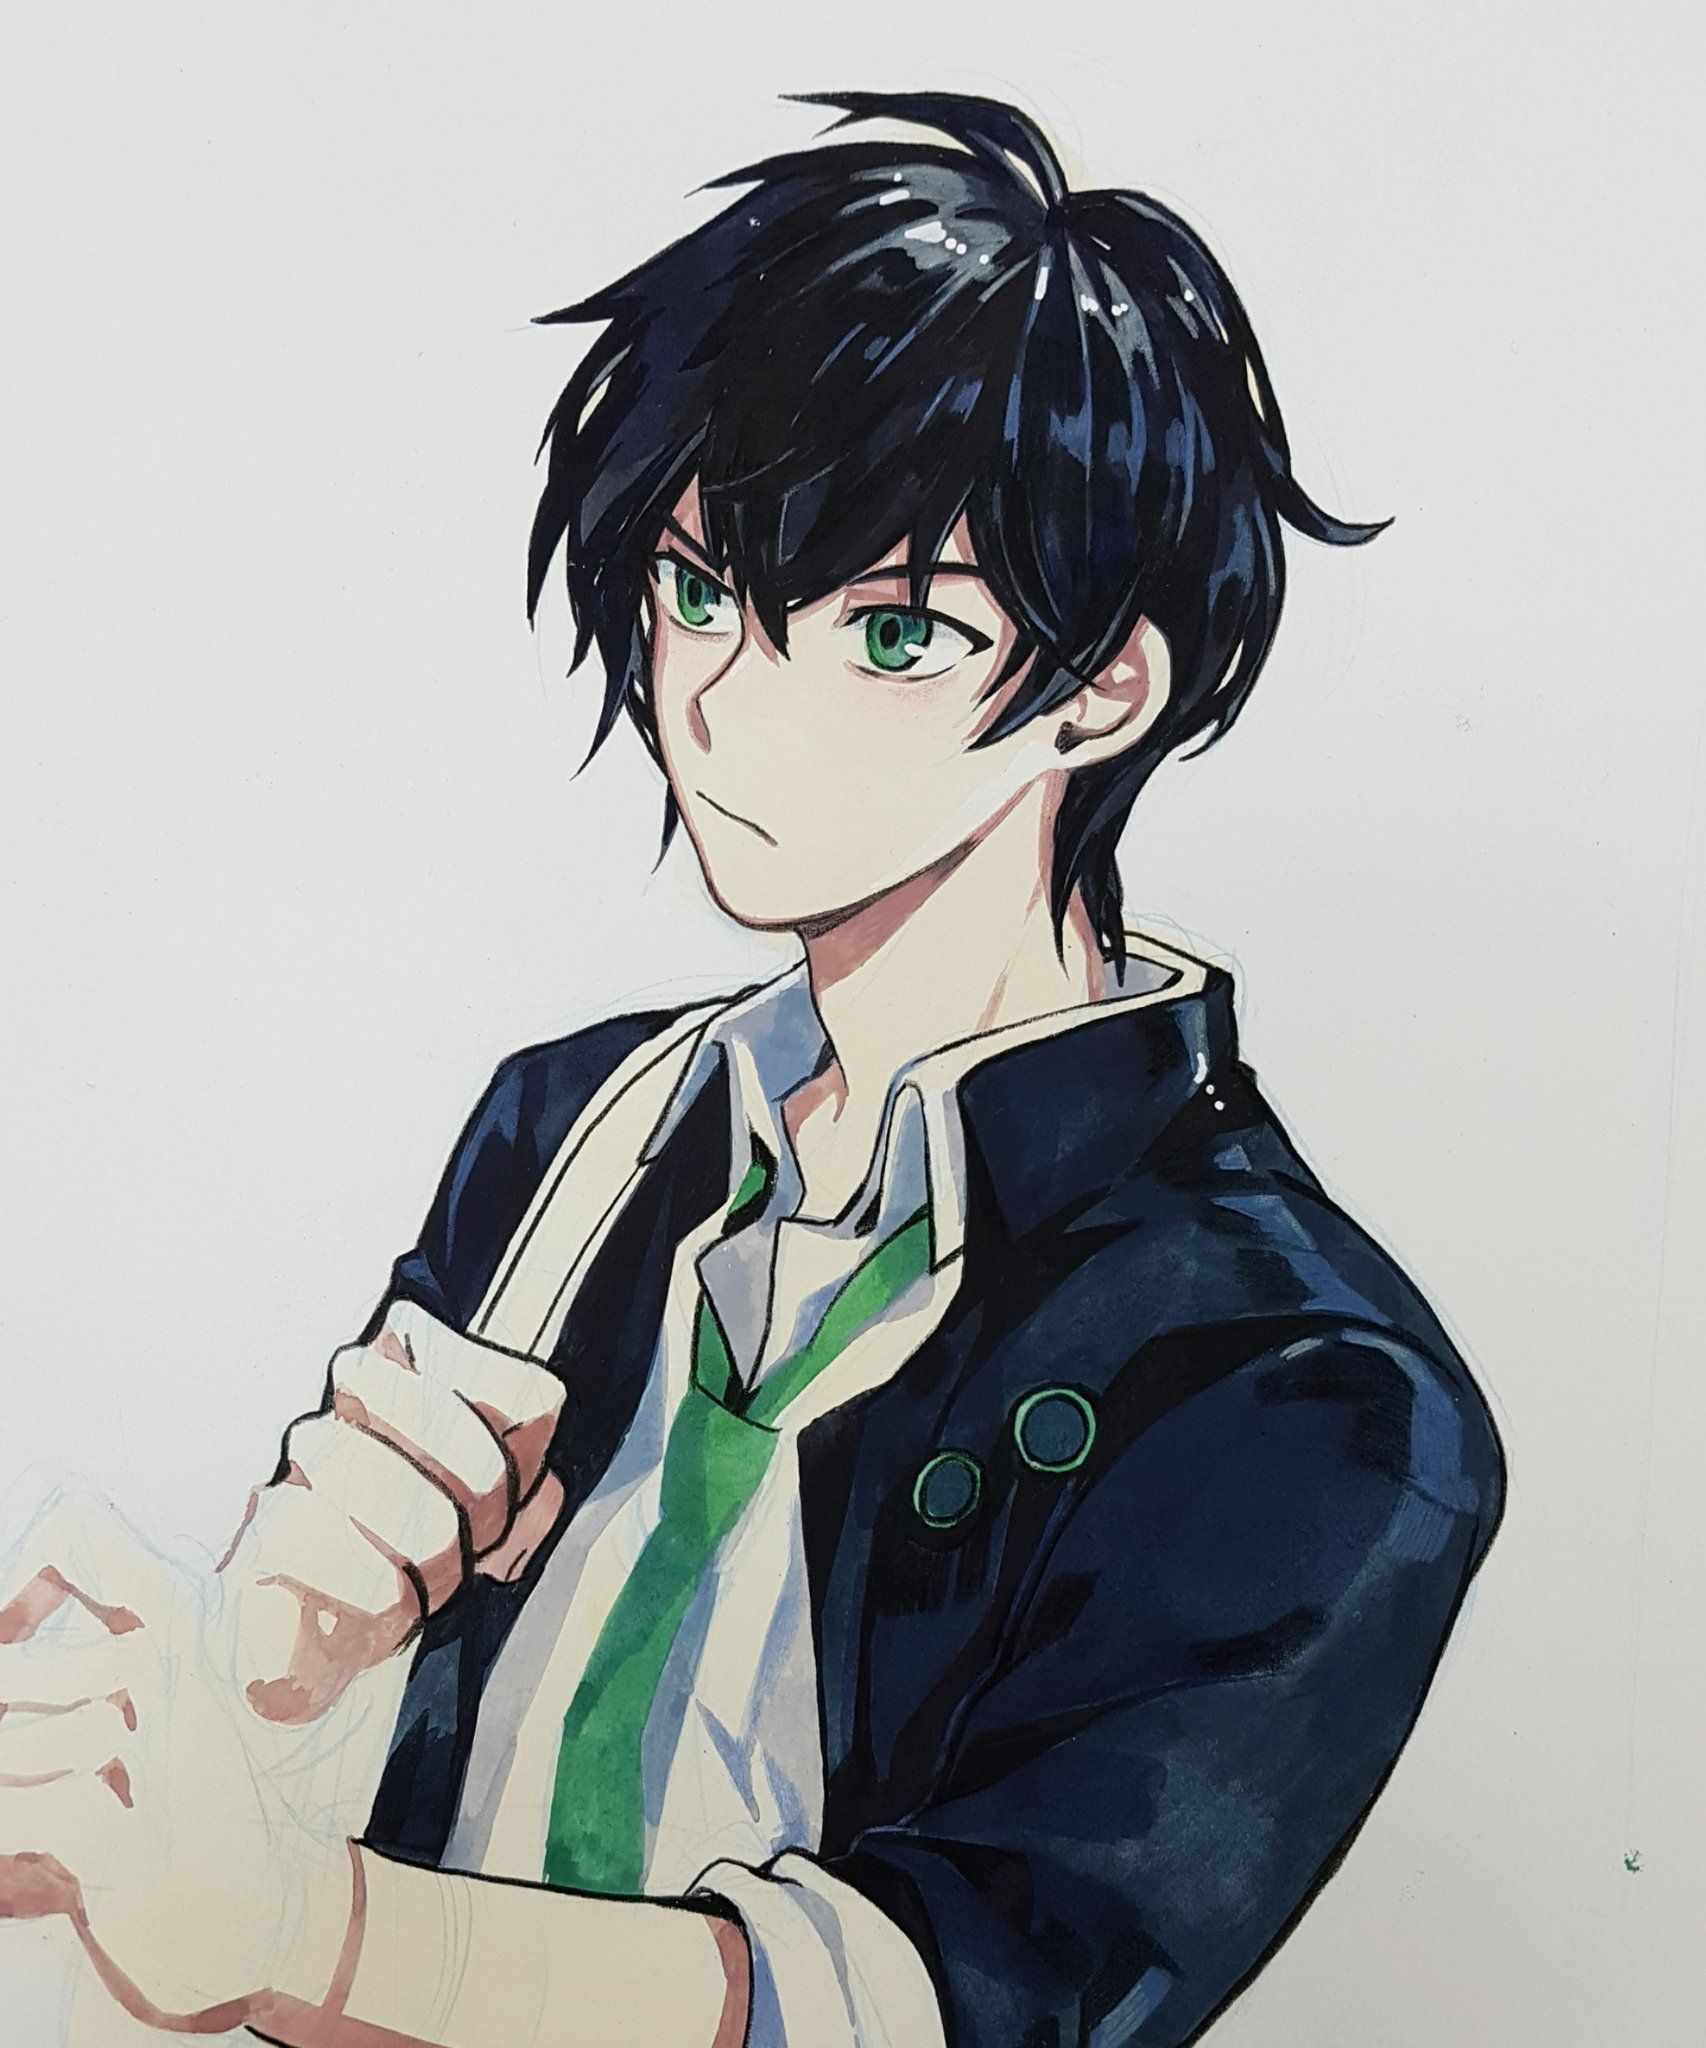 Anime Guy Black Hair Green Eyes Green Tie School Uniform Formal Backpack Black Hair Green Eyes Anime Black Hair Black Hair Boy